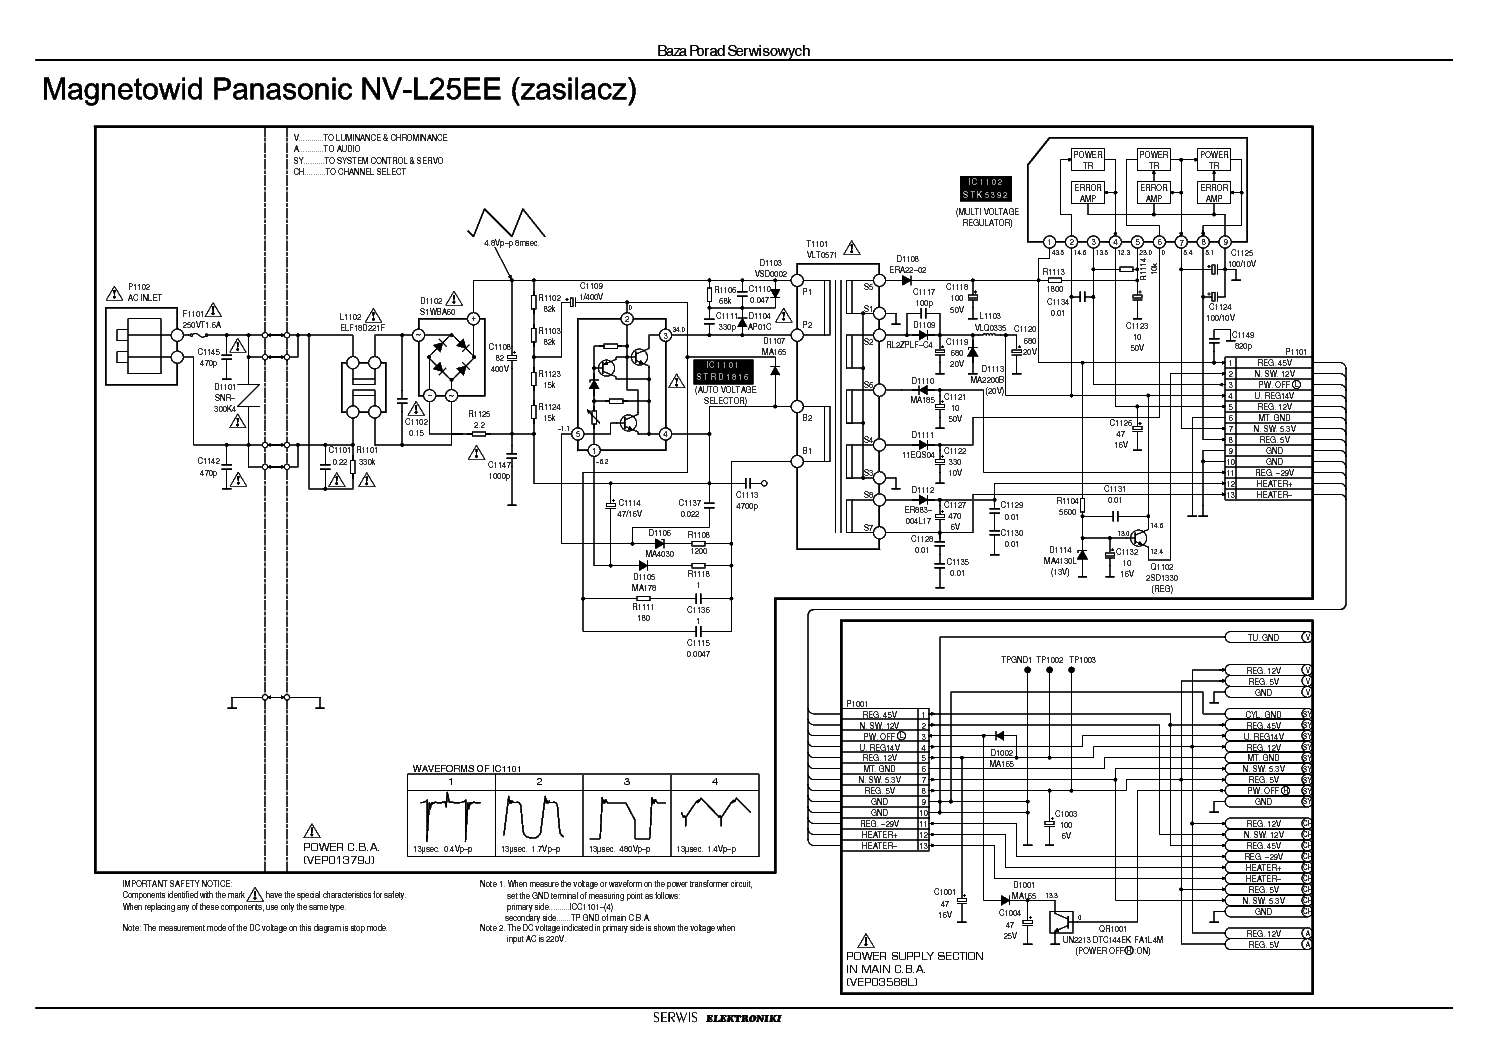 panasonic sa ht75 service manual warez is my life rh warezismylifeg2a soup io panasonic home theater sa-ht75 manual panasonic dvd home theater sound system sa-ht 75 manual